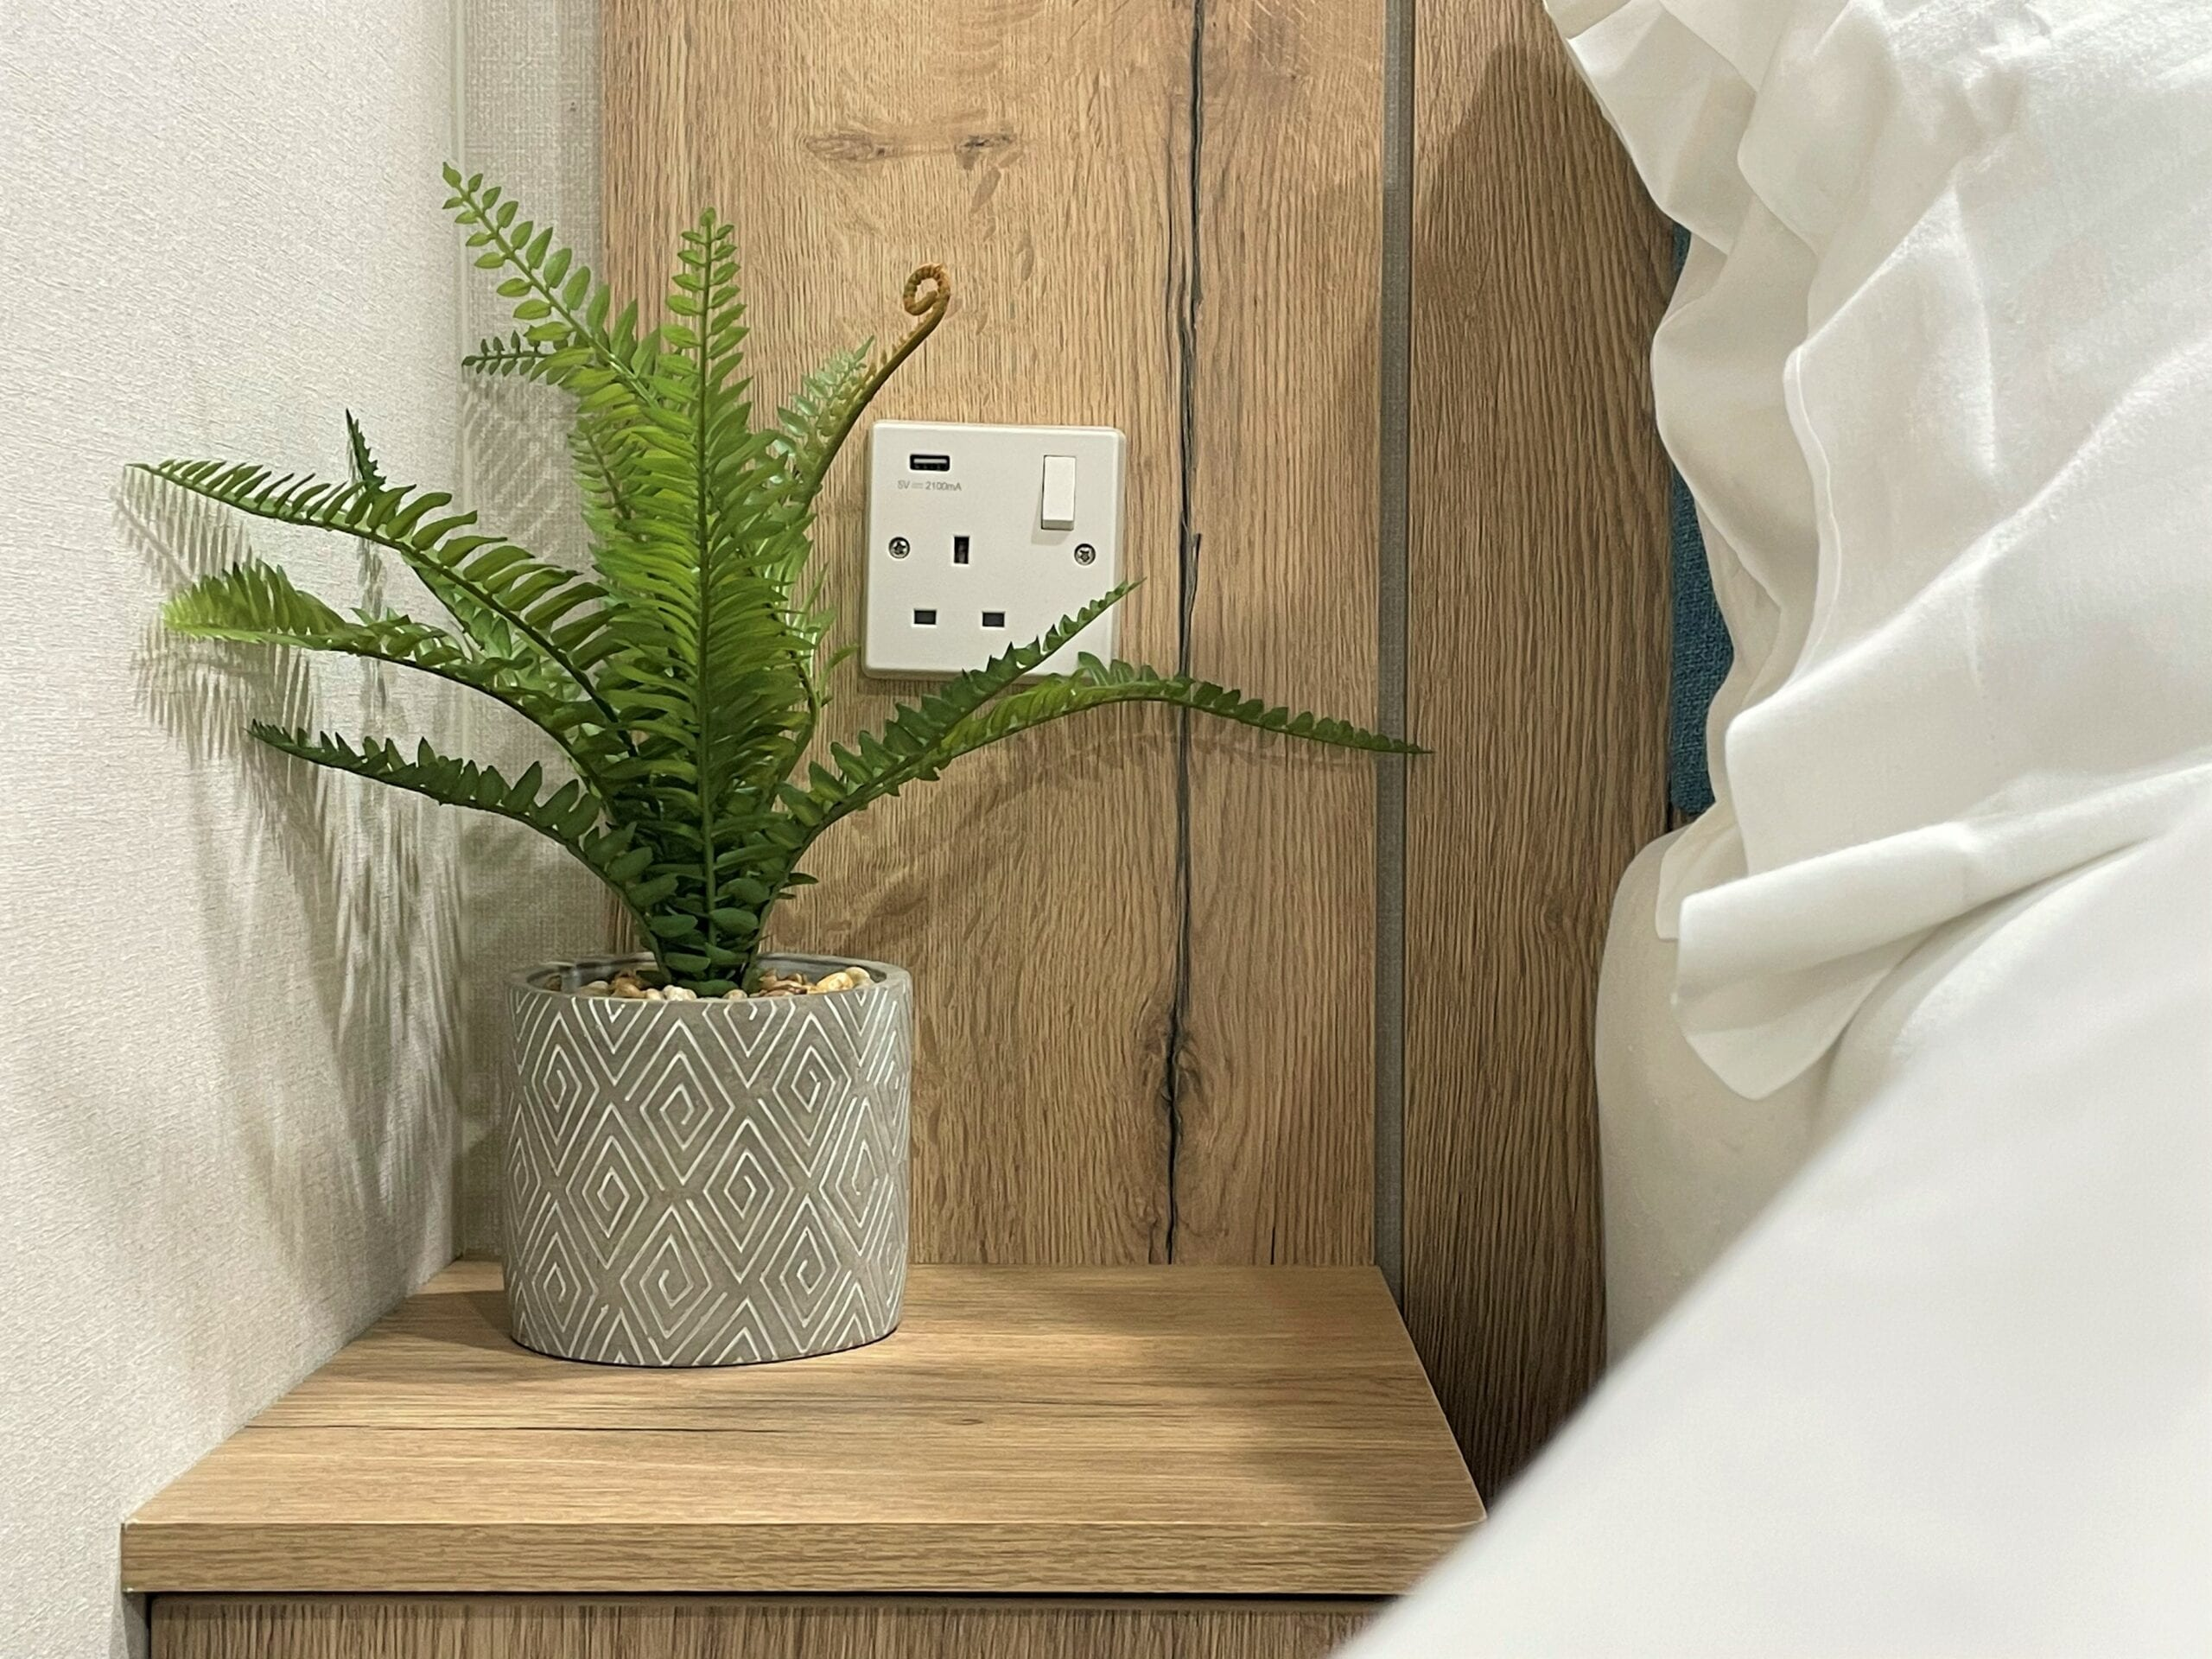 Holgates Holiday parks in Lancashire - Power outlets